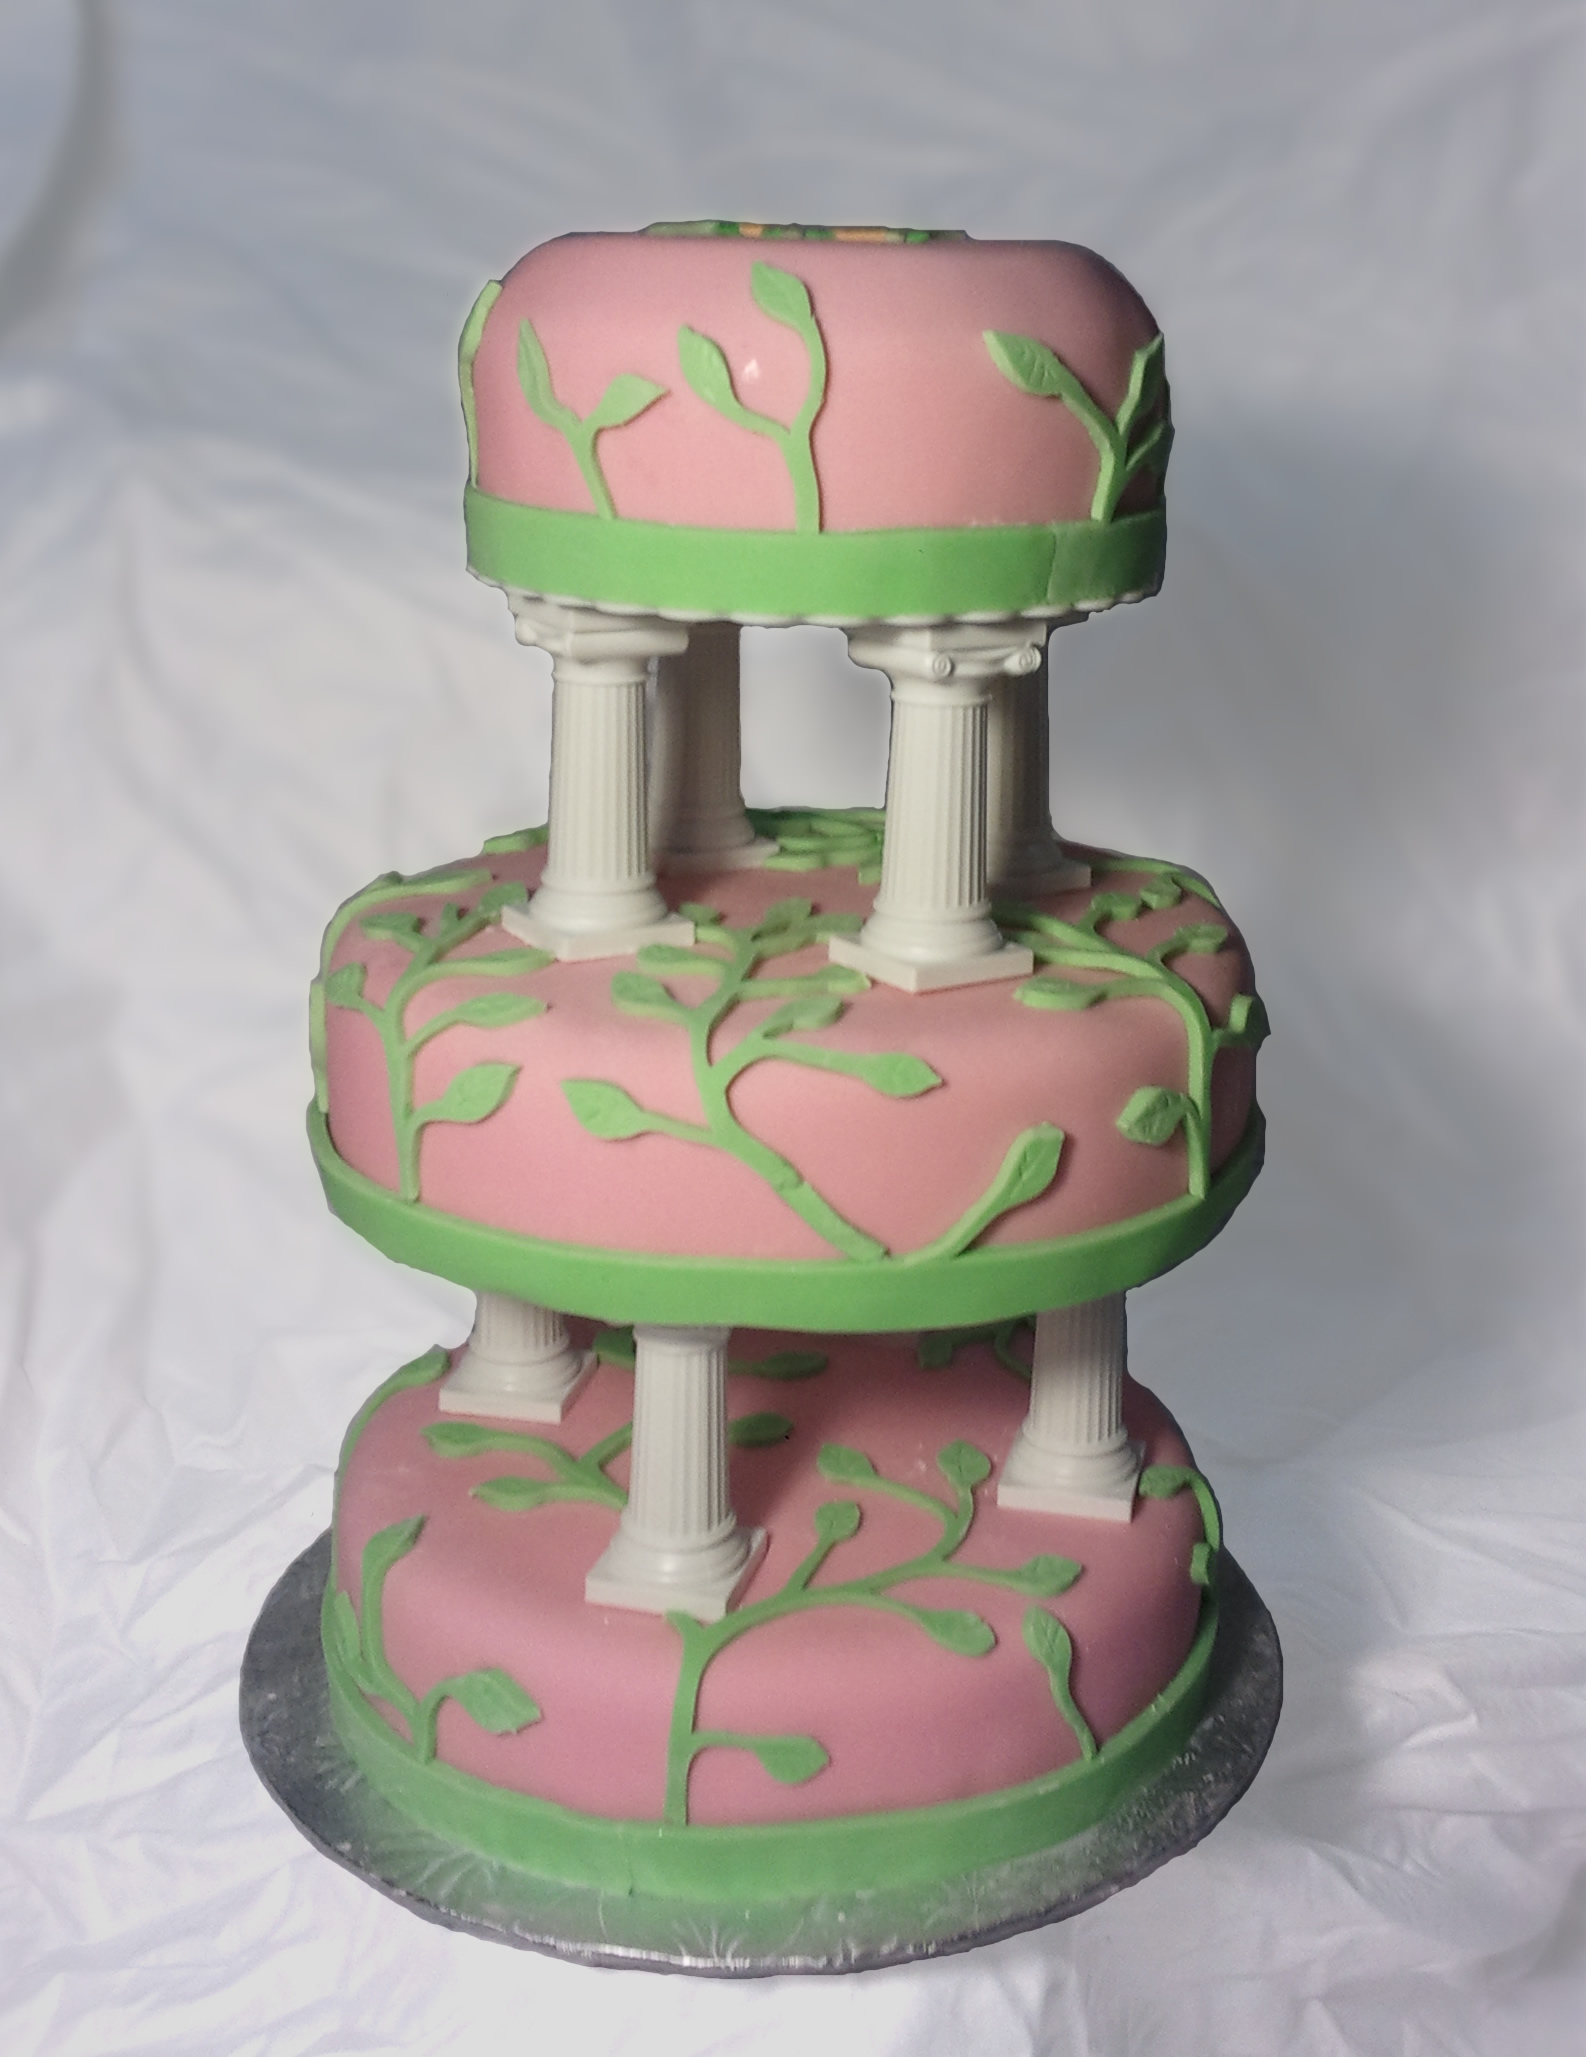 How to use fondant to make an awesome cake